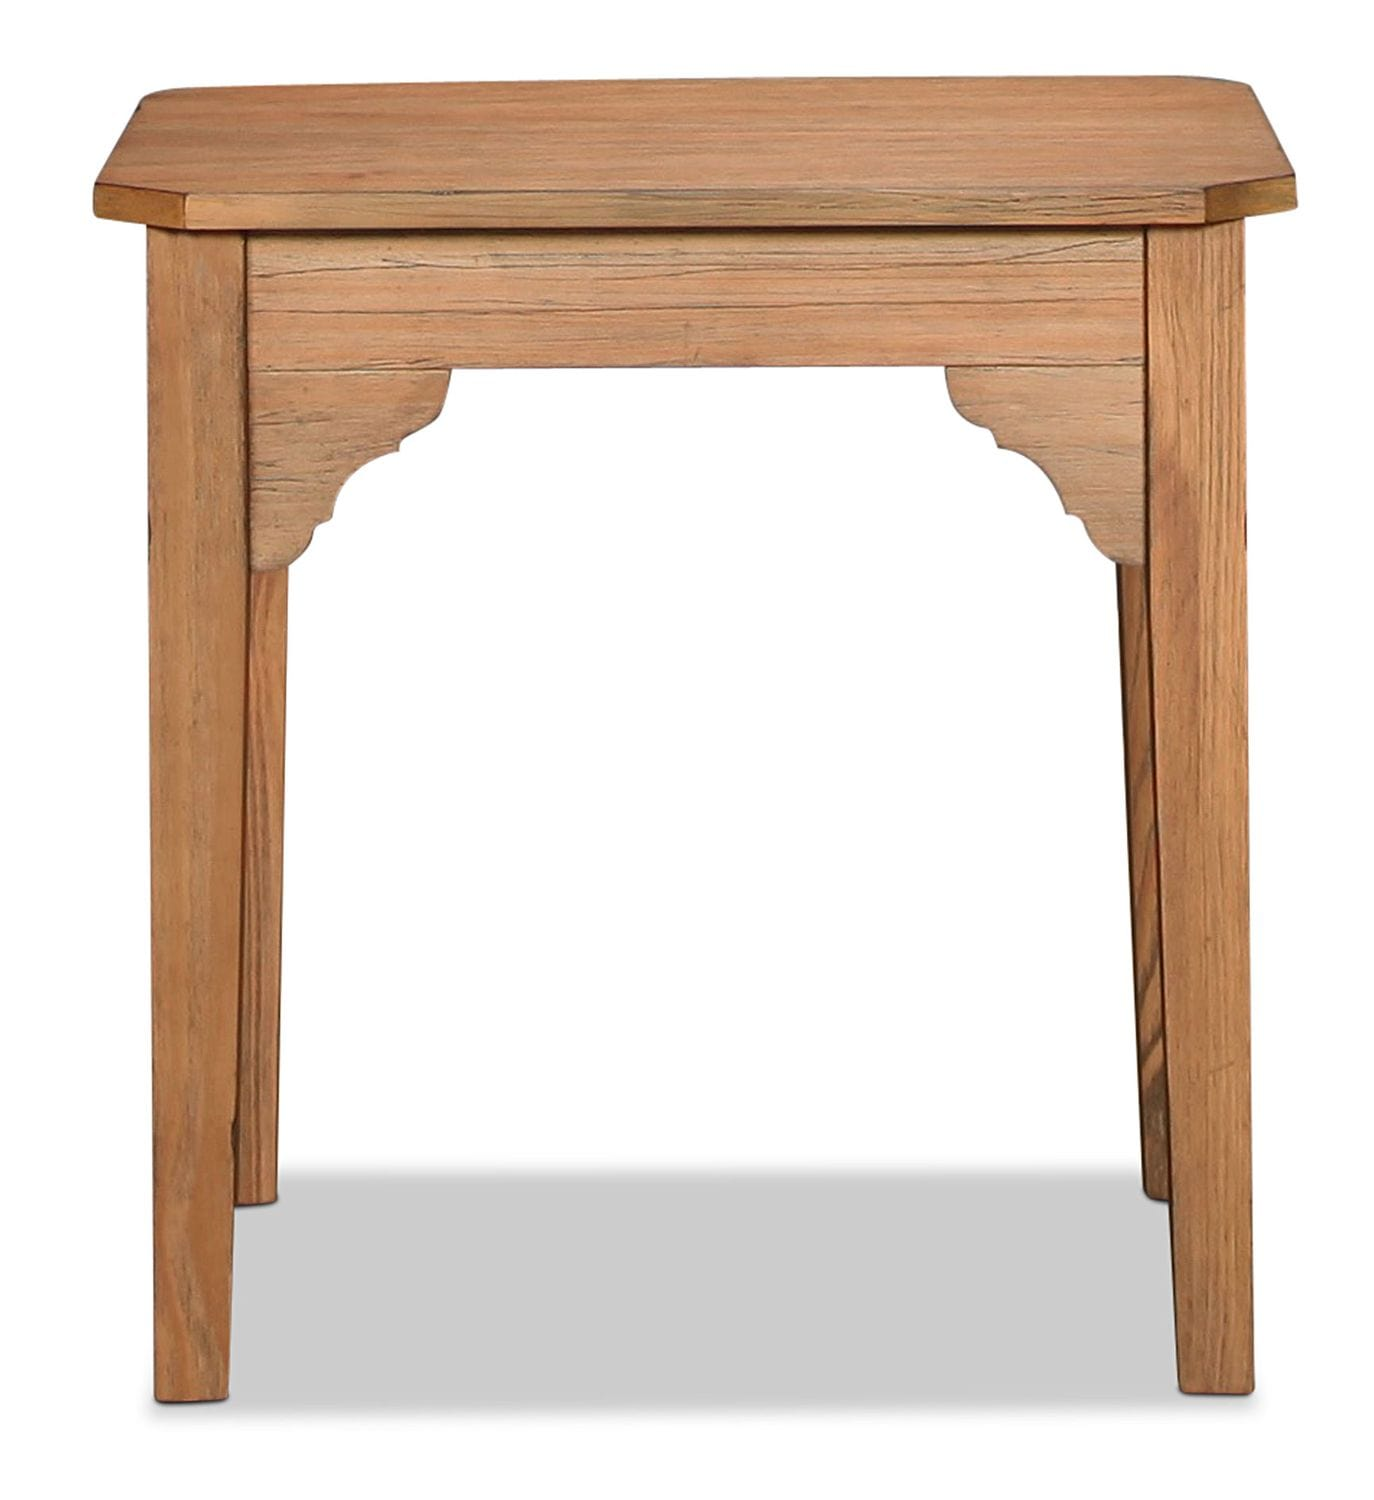 Accent and Occasional Furniture - Magnolia Home Farmhouse Bracket End Table